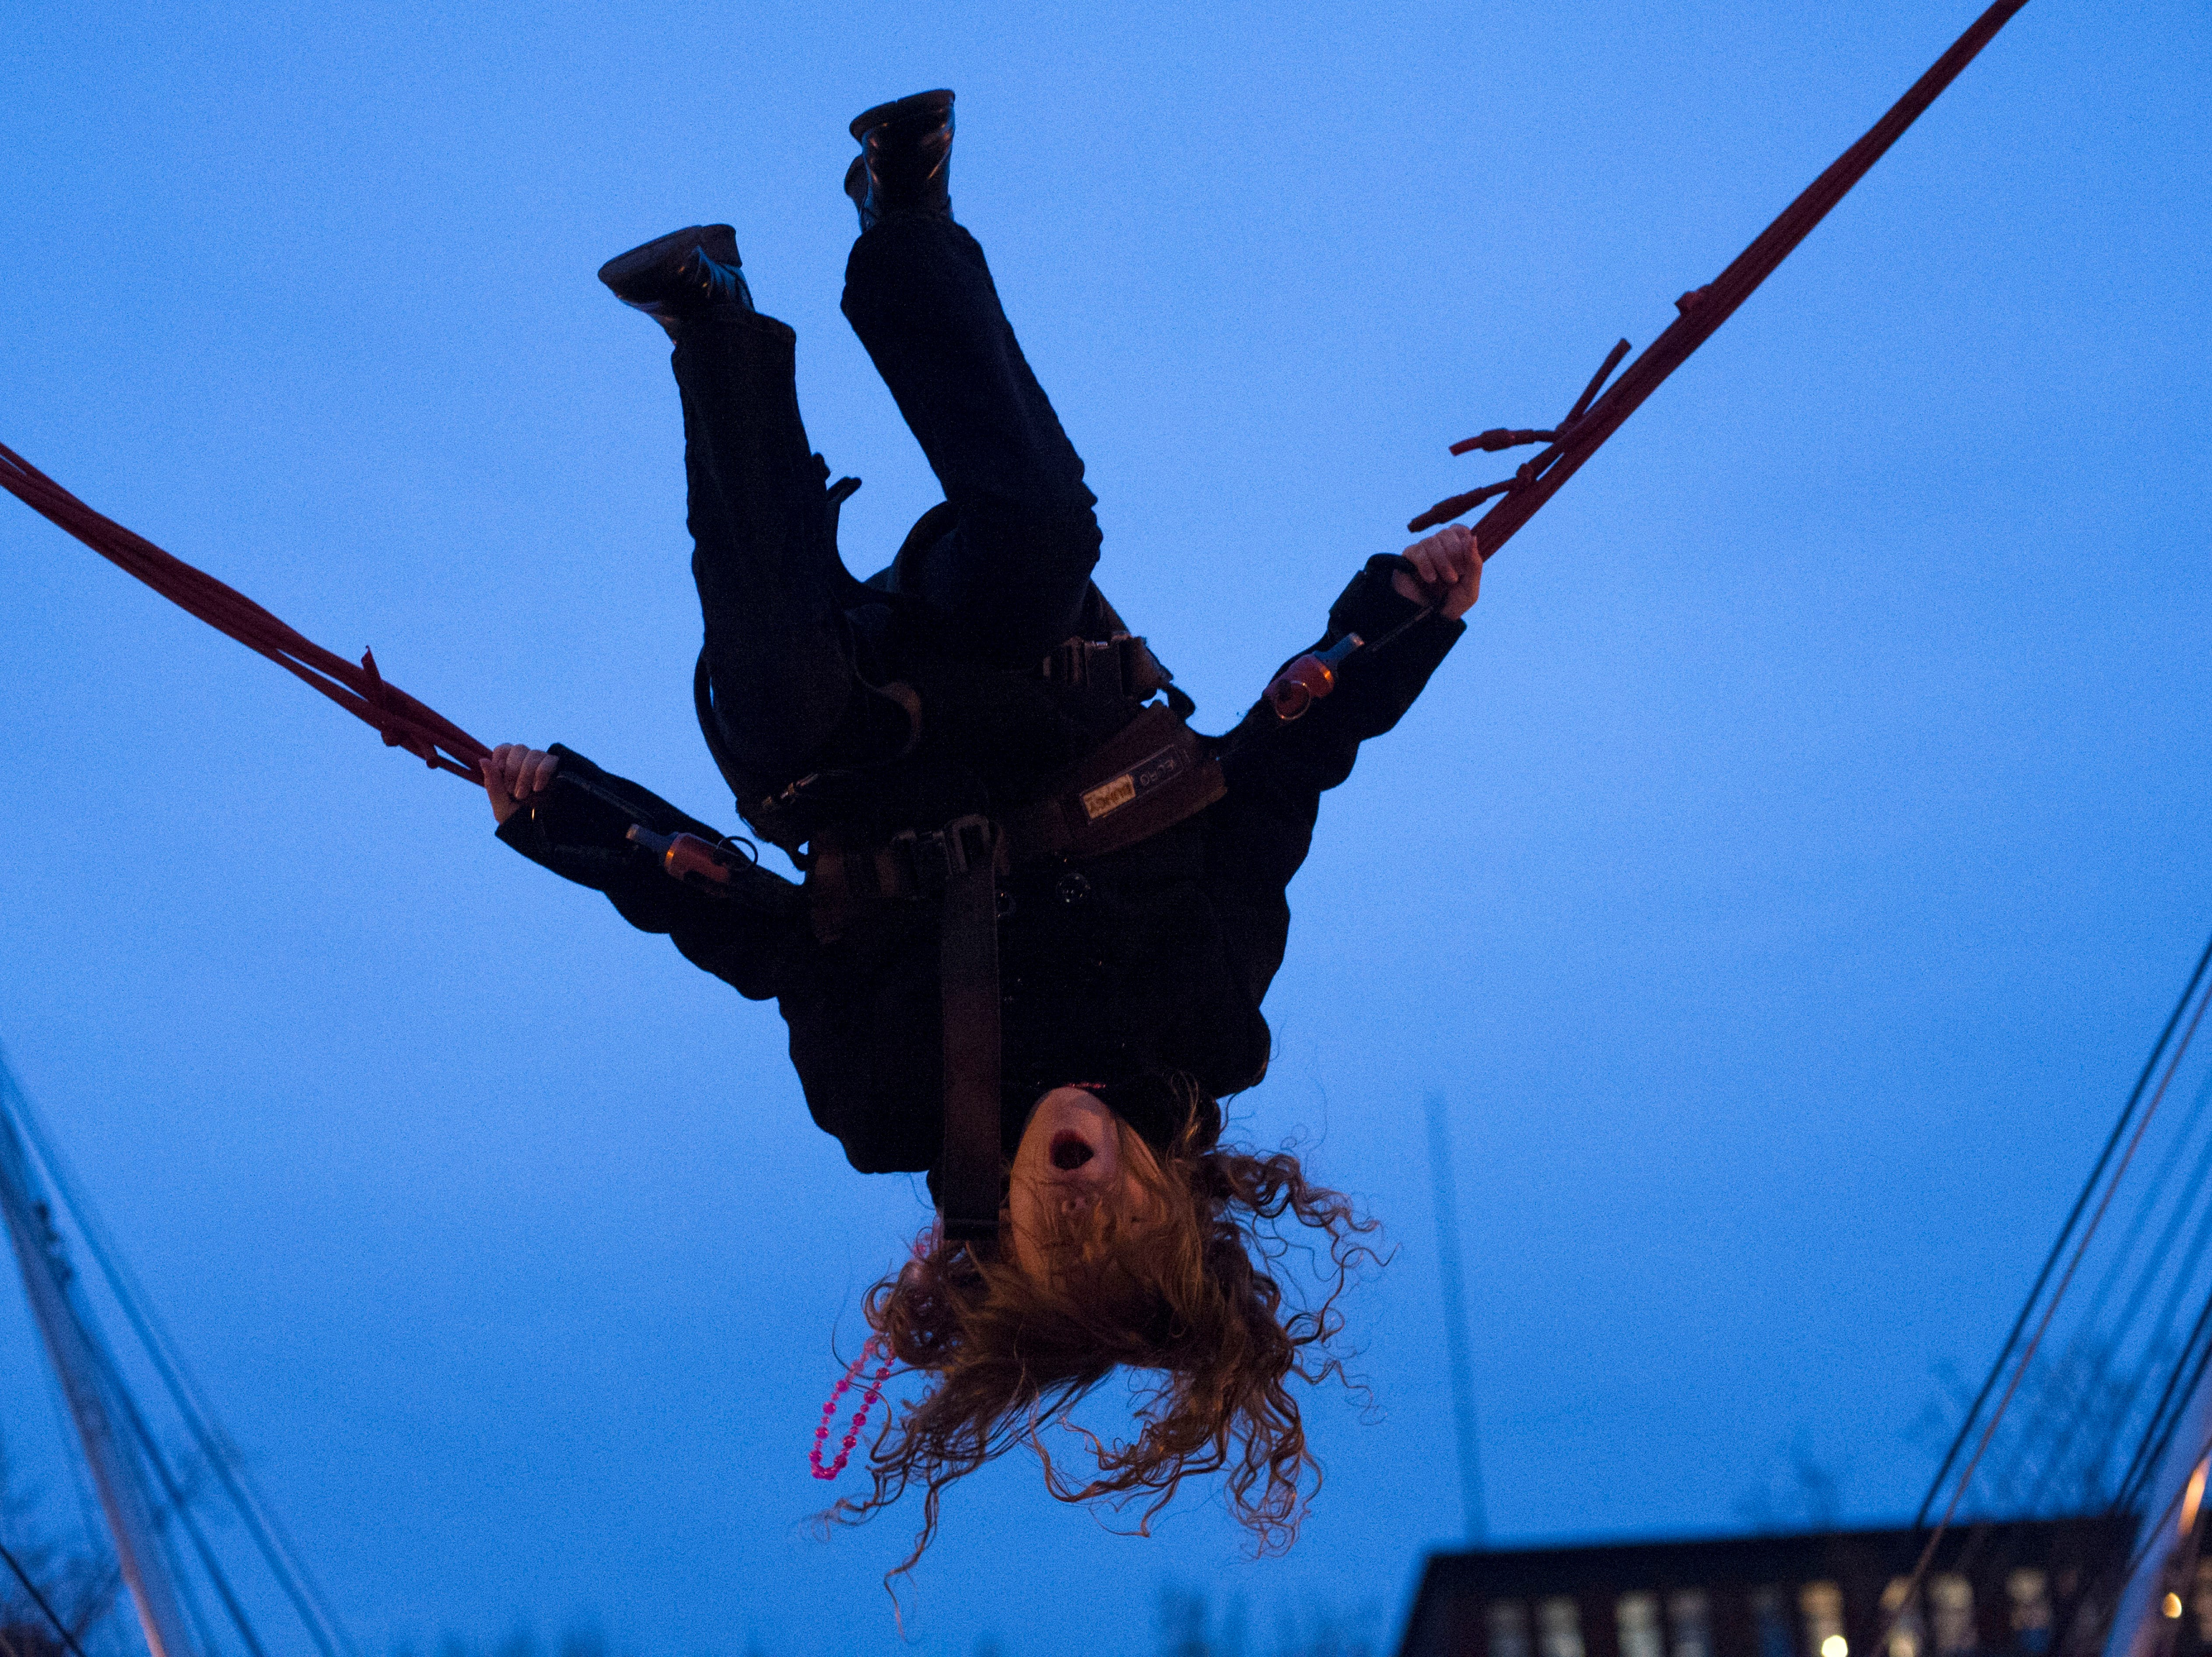 Keeley Kindt, 8, swings upside down on a bungee swing at Market Square during the City's New Year's Eve celebration on Monday, December 31, 2012.